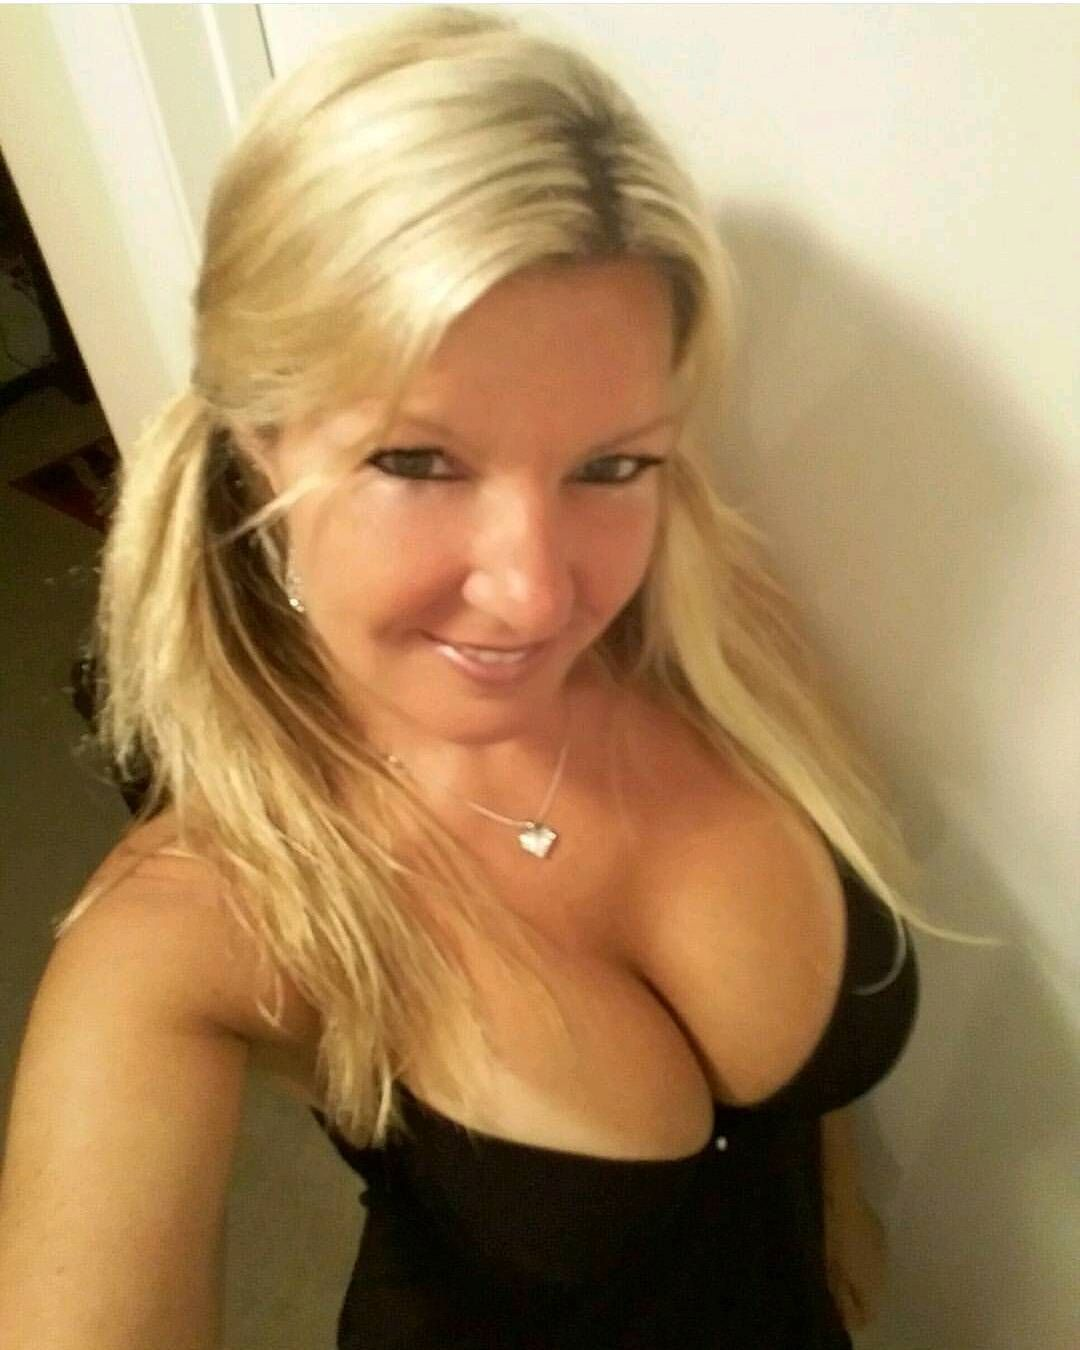 Dating Sites Reviews, Online Dating, Ps